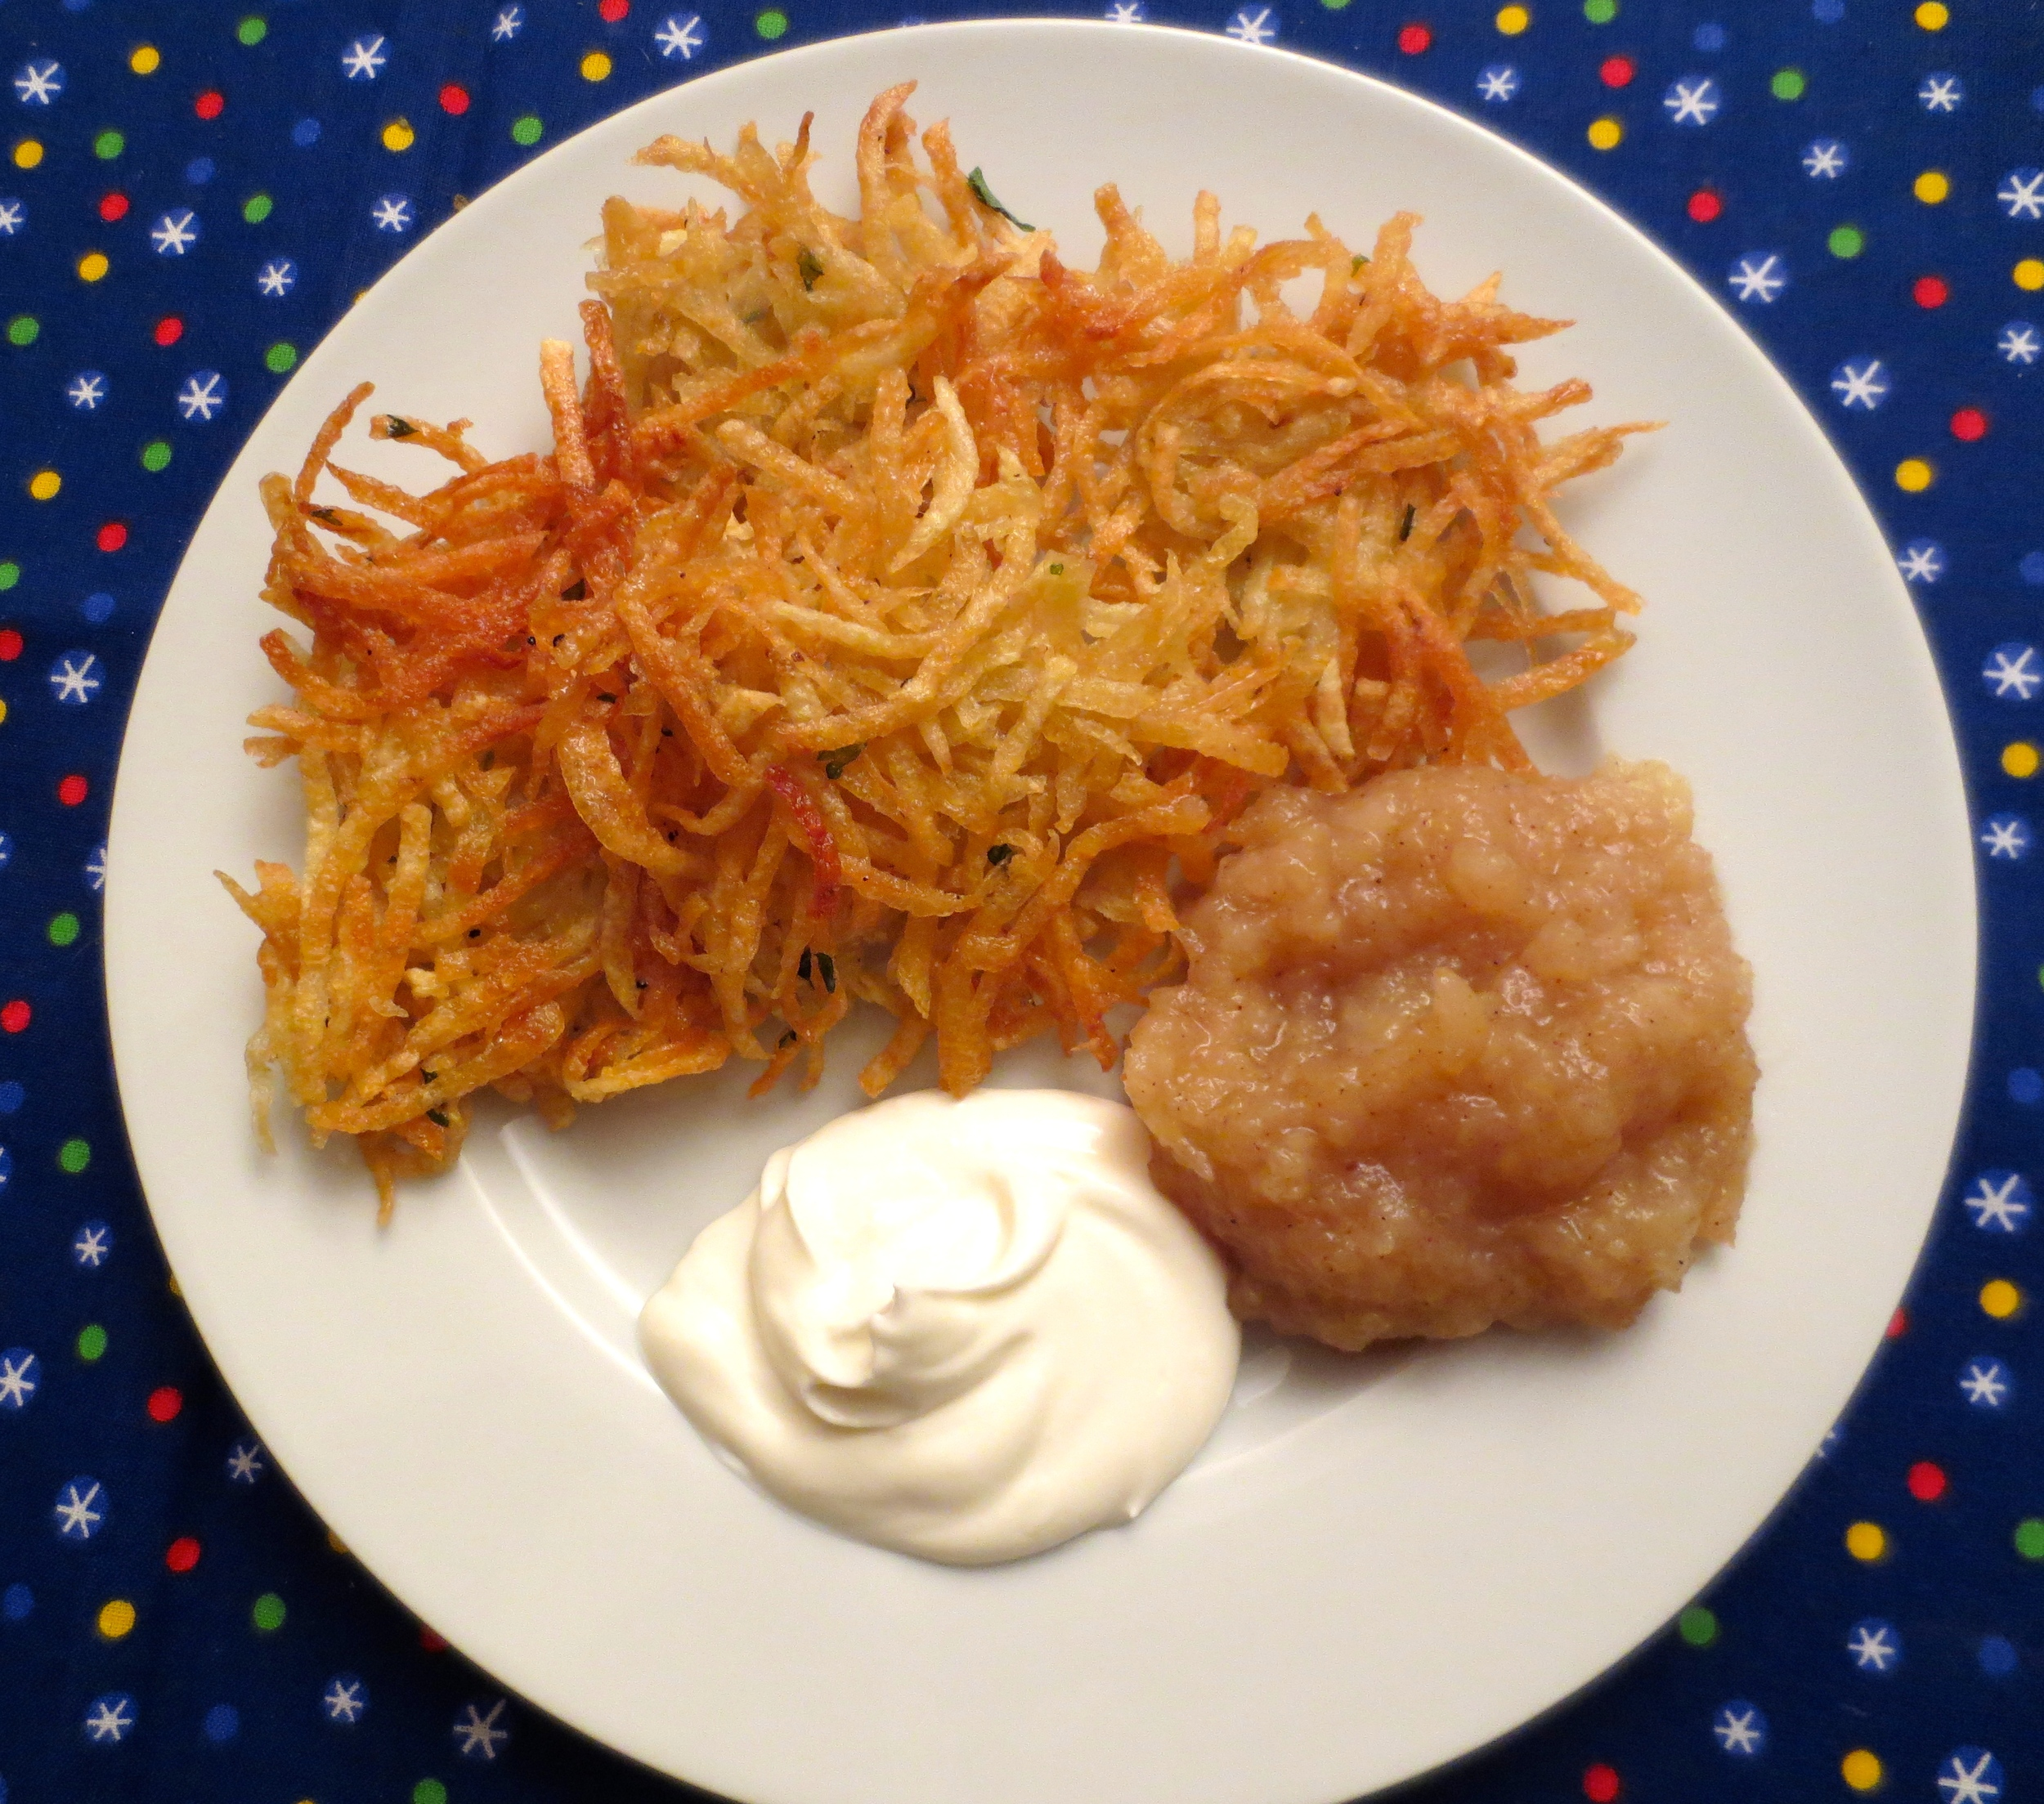 Finished latkes- served immediately with a side of fresh applesauce and sour cream. Enjoy!